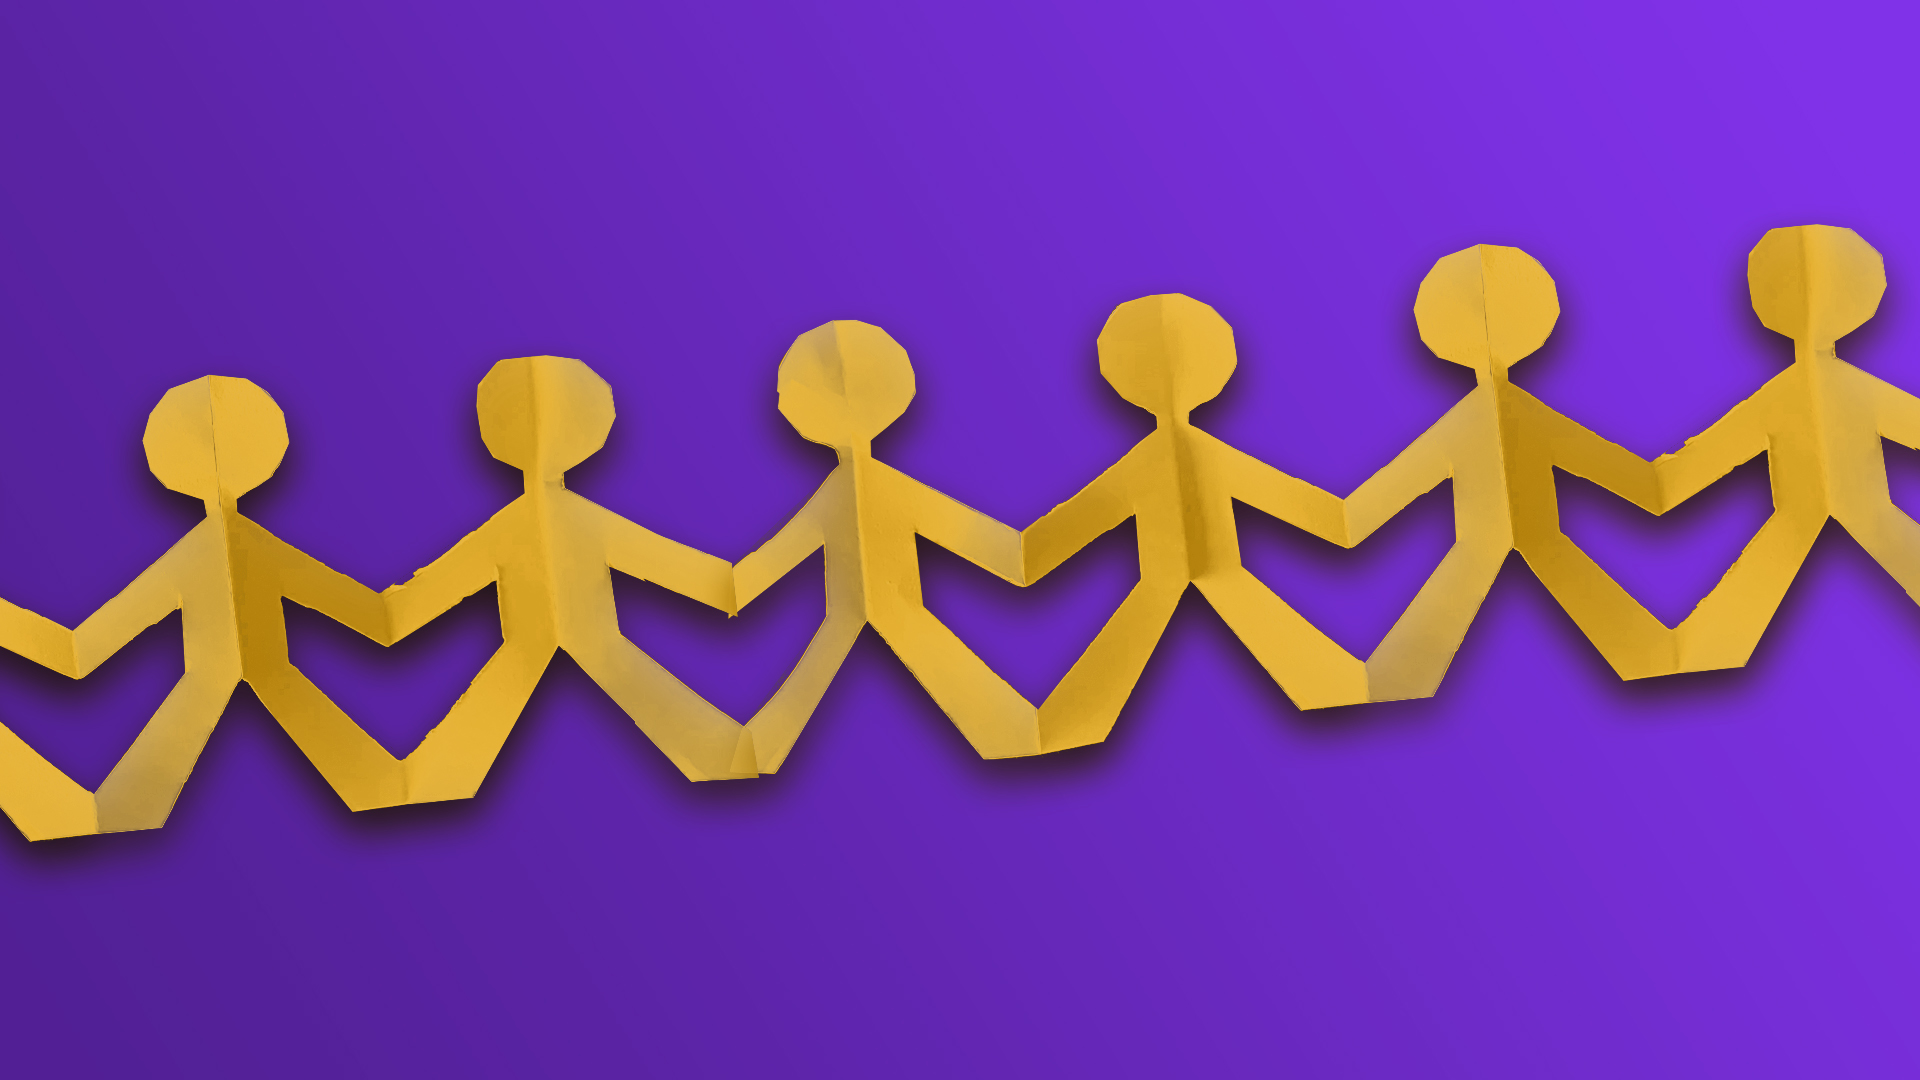 Friendship - Yellow cut out paper men holding hands on purple background